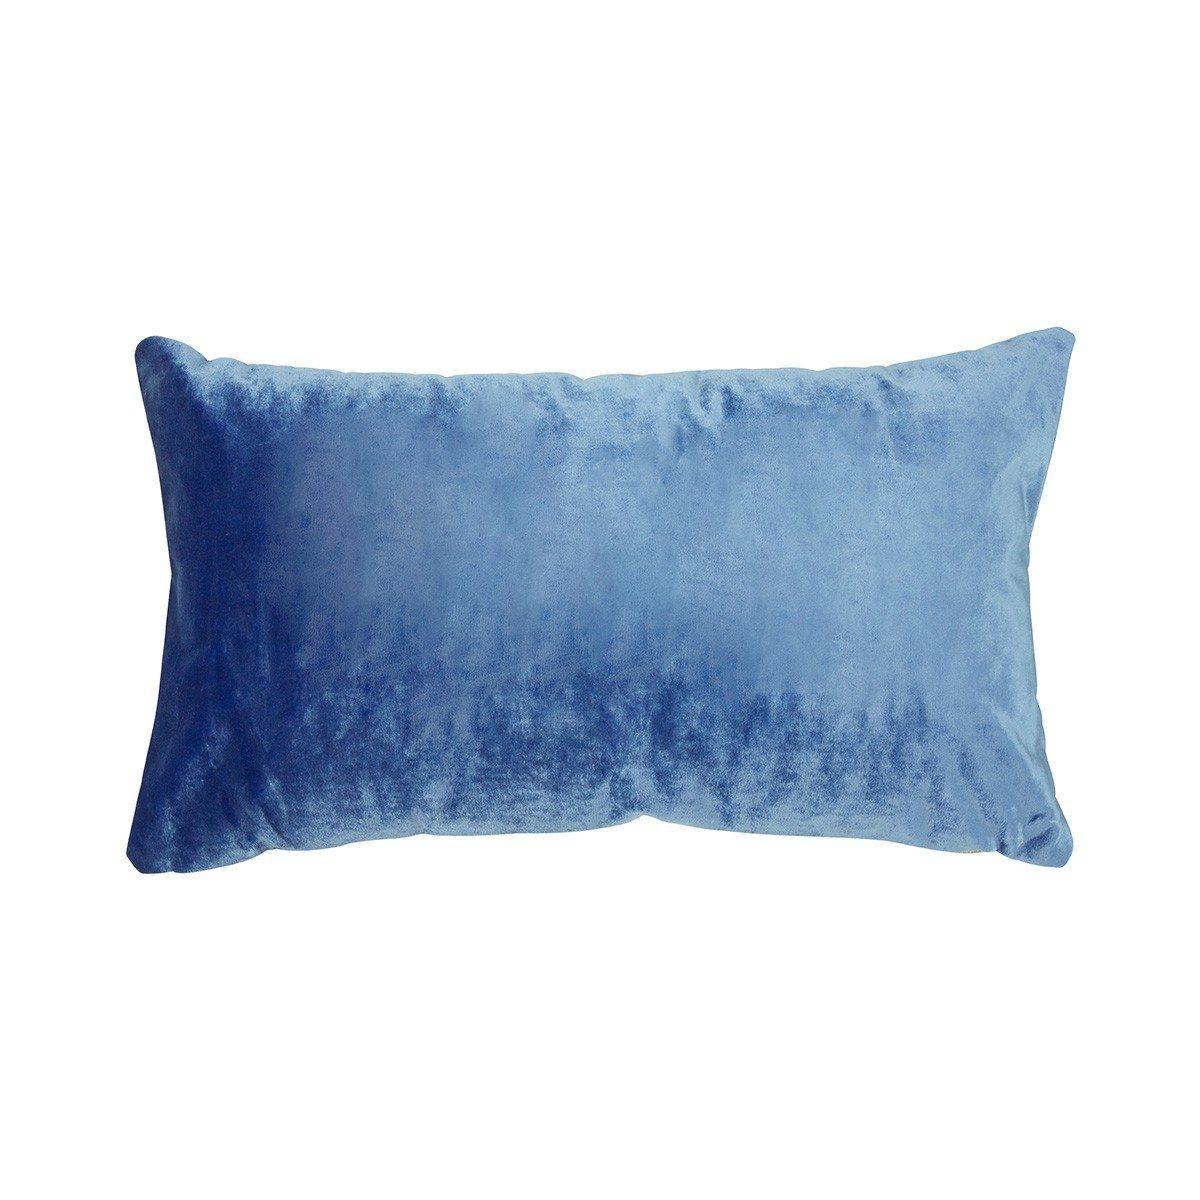 Berlingot Lumbar Decorative Throw Pillows by Iosis Fig Linens Olympe Blue